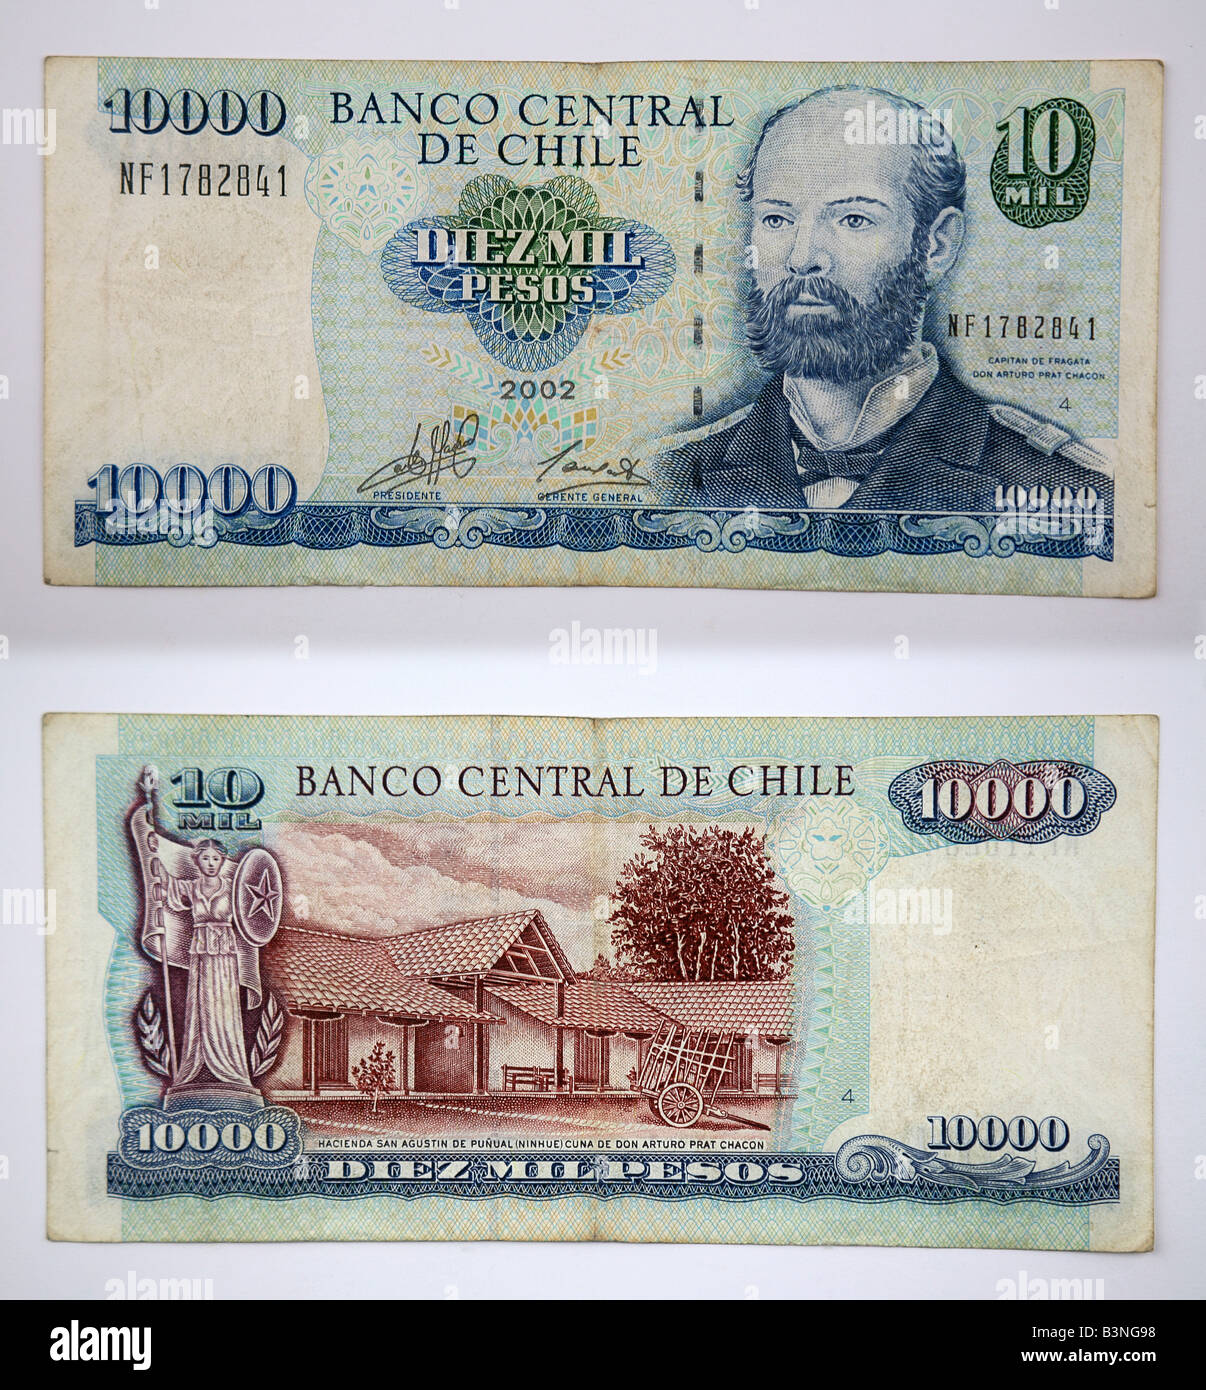 1000 Pesos Bank Notes From Chile Banco Central De Chile Stock Photo Alamy